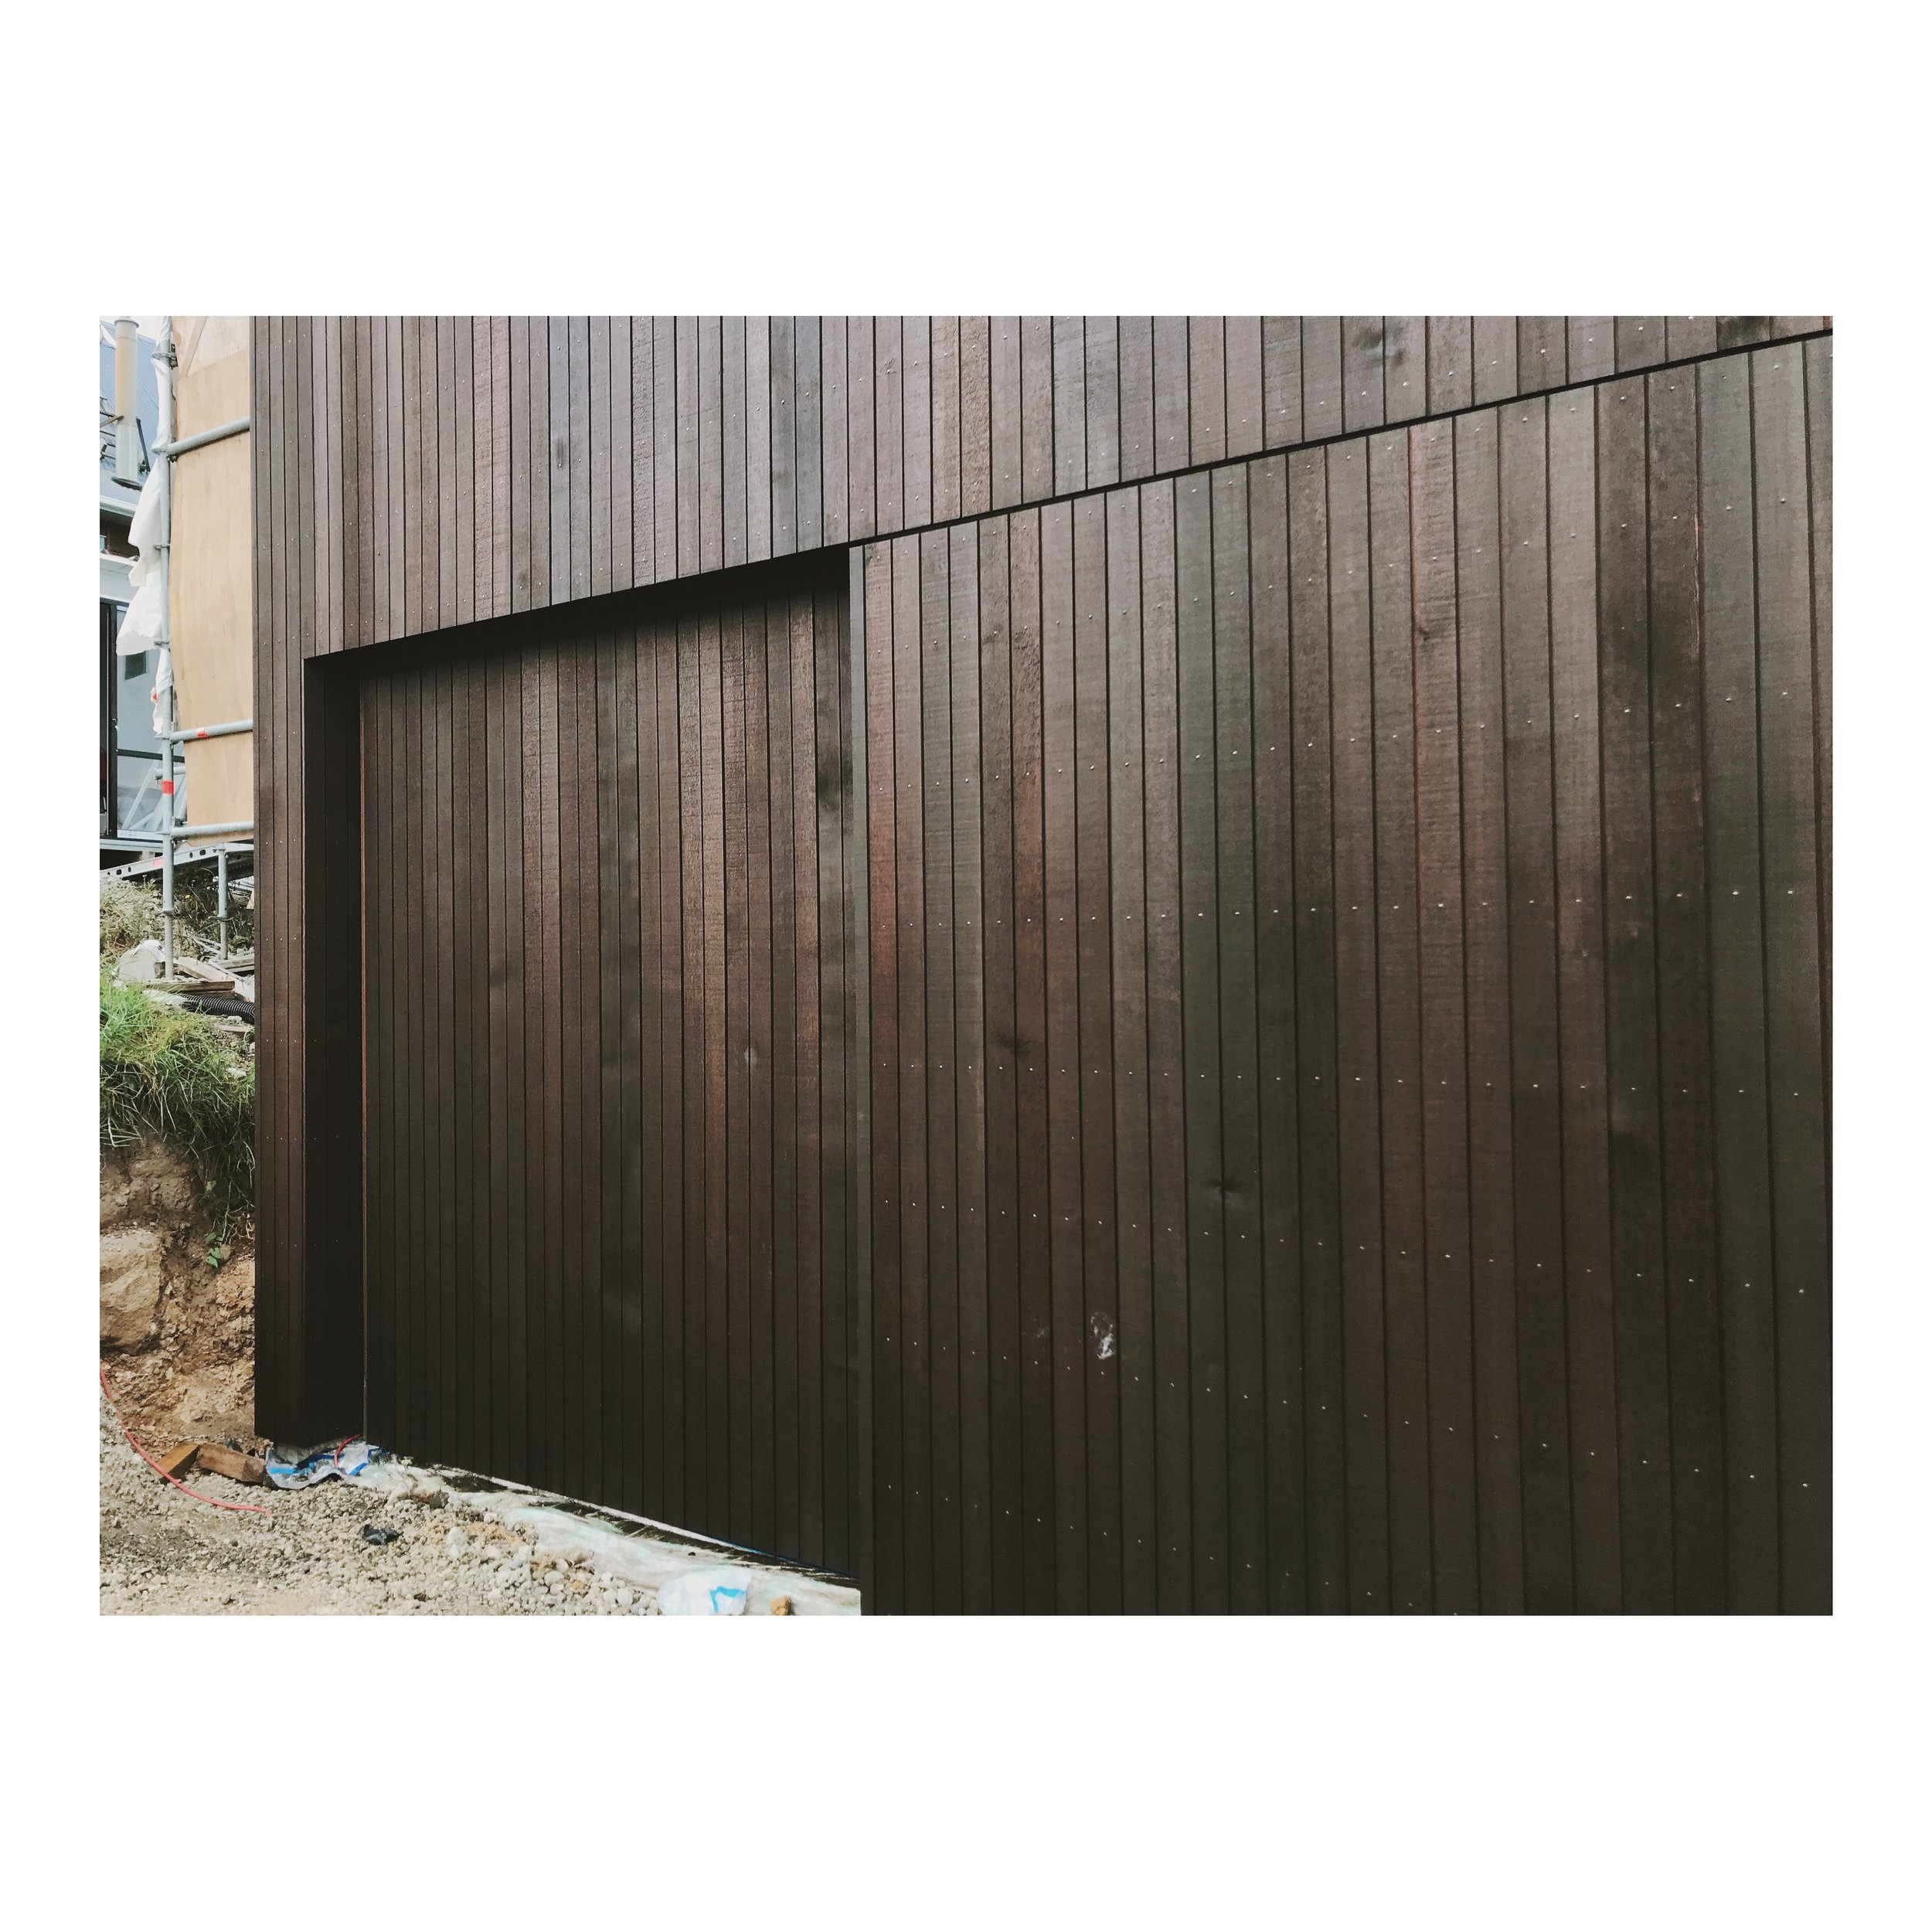 ROSENFELD KIDSON CEDAR   We have chosen a beautiful cedar vertical board in various widths and dark stain